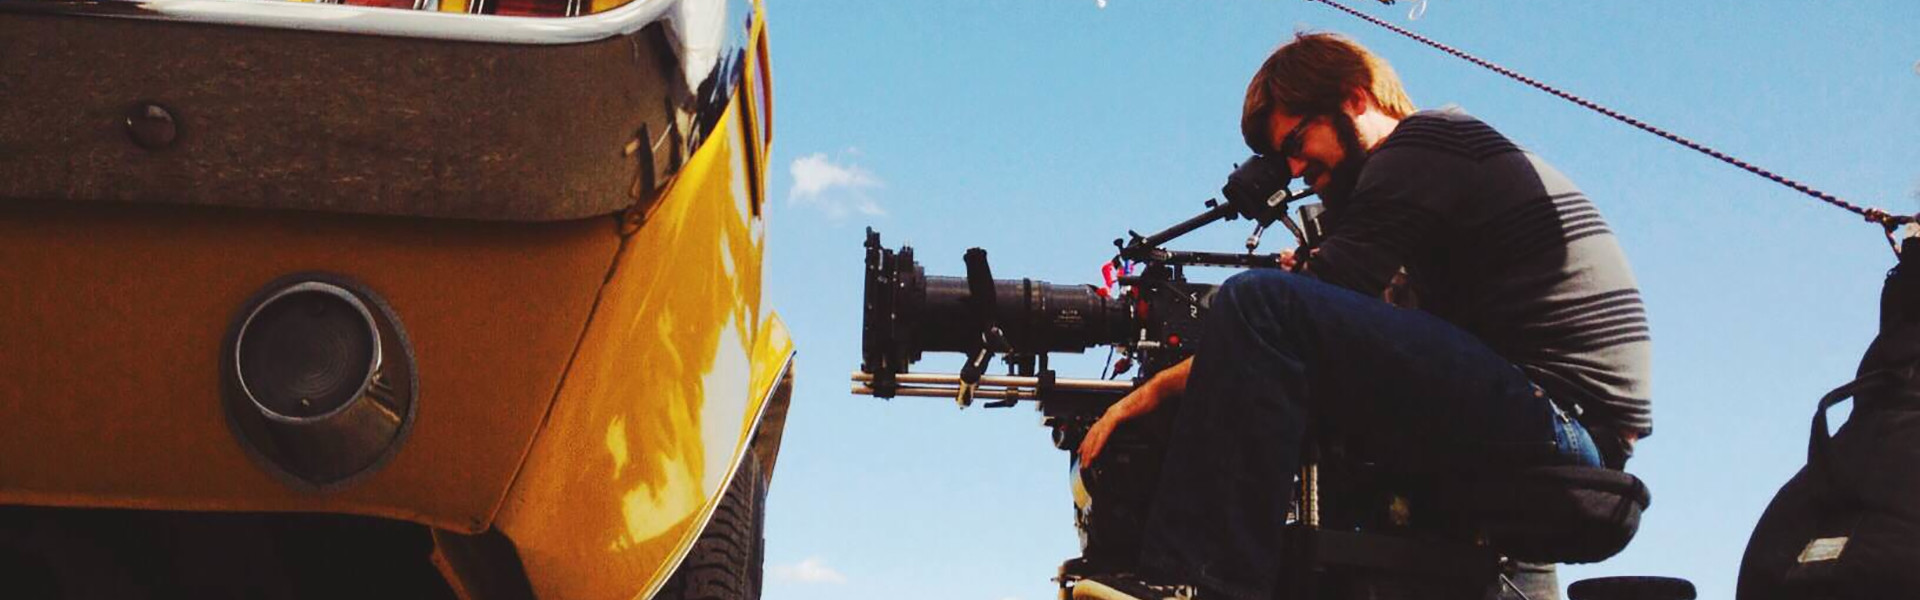 Header image for article Indie Film Jackrabbit 29 Goes Anamorphic with ALEXA 4:3